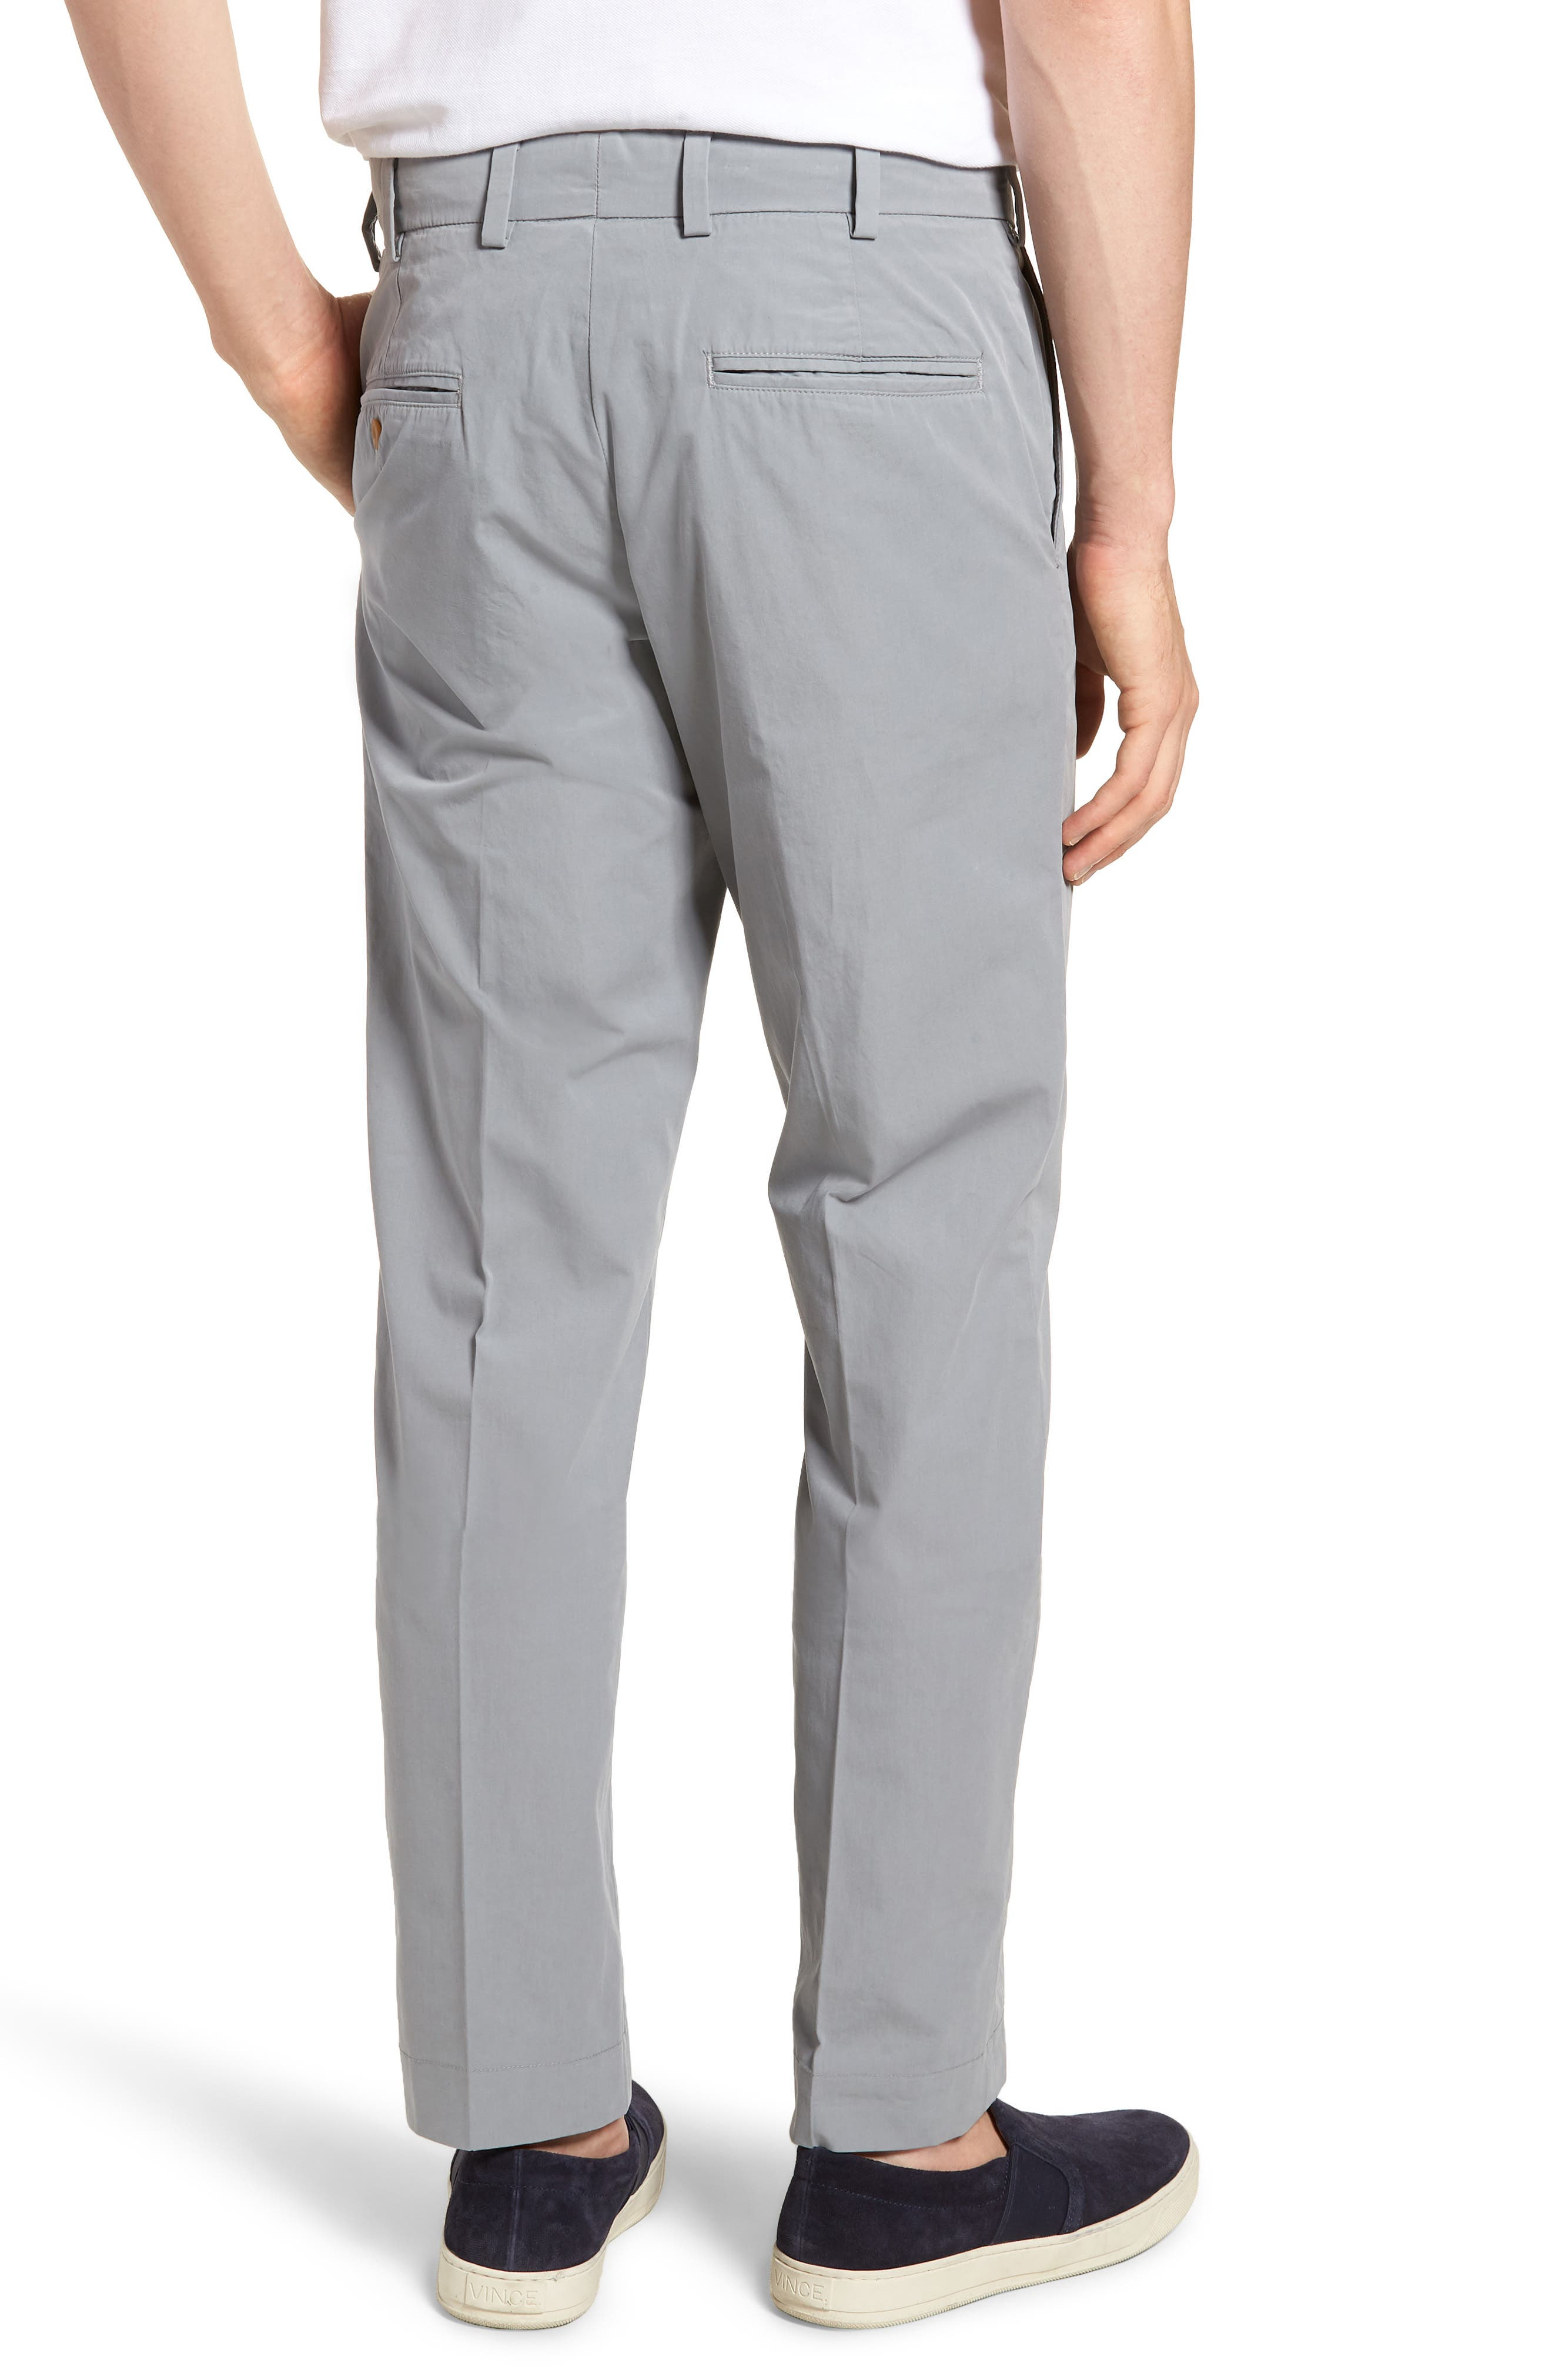 M3 Straight Fit Flat Front Tropical Poplin Pants,                             Alternate thumbnail 2, color,                             Nickel